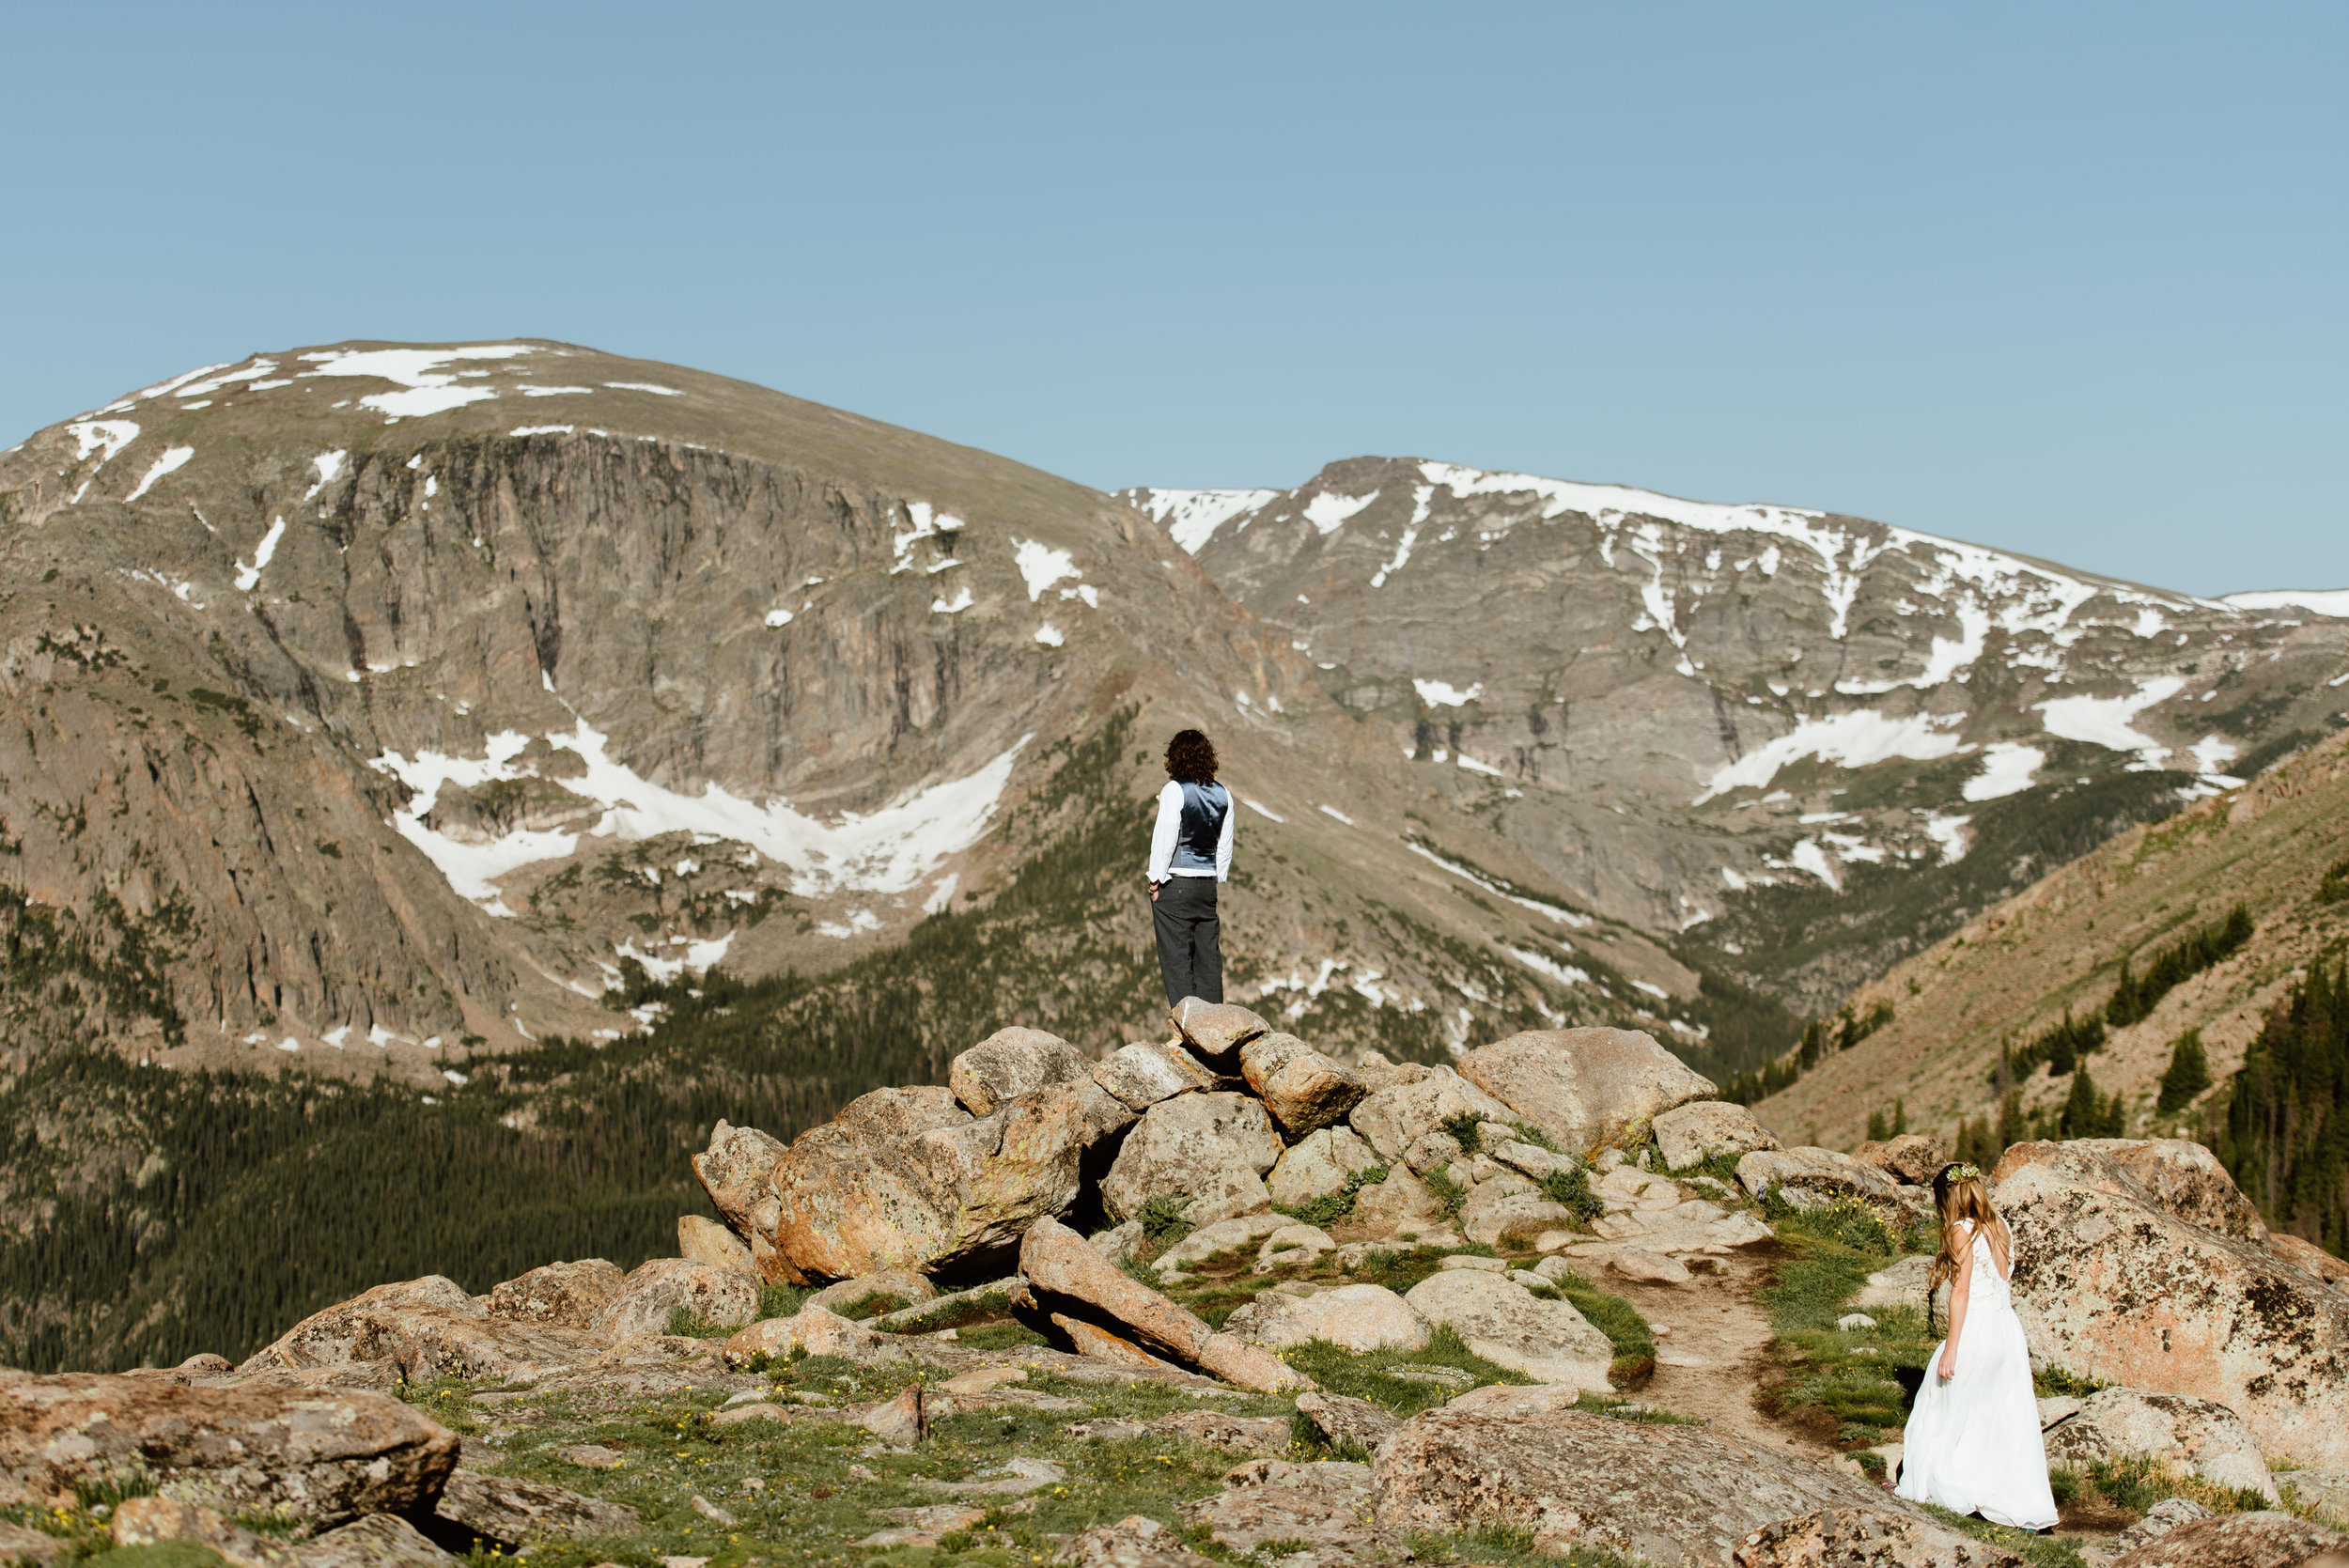 Love the new trend of doing a first look before the wedding ceremony! Such a cute mountaintop elopement! | Trail Ridge Road, RMNP elopement photos by Colorado adventure elopement photographer, Maddie Mae.